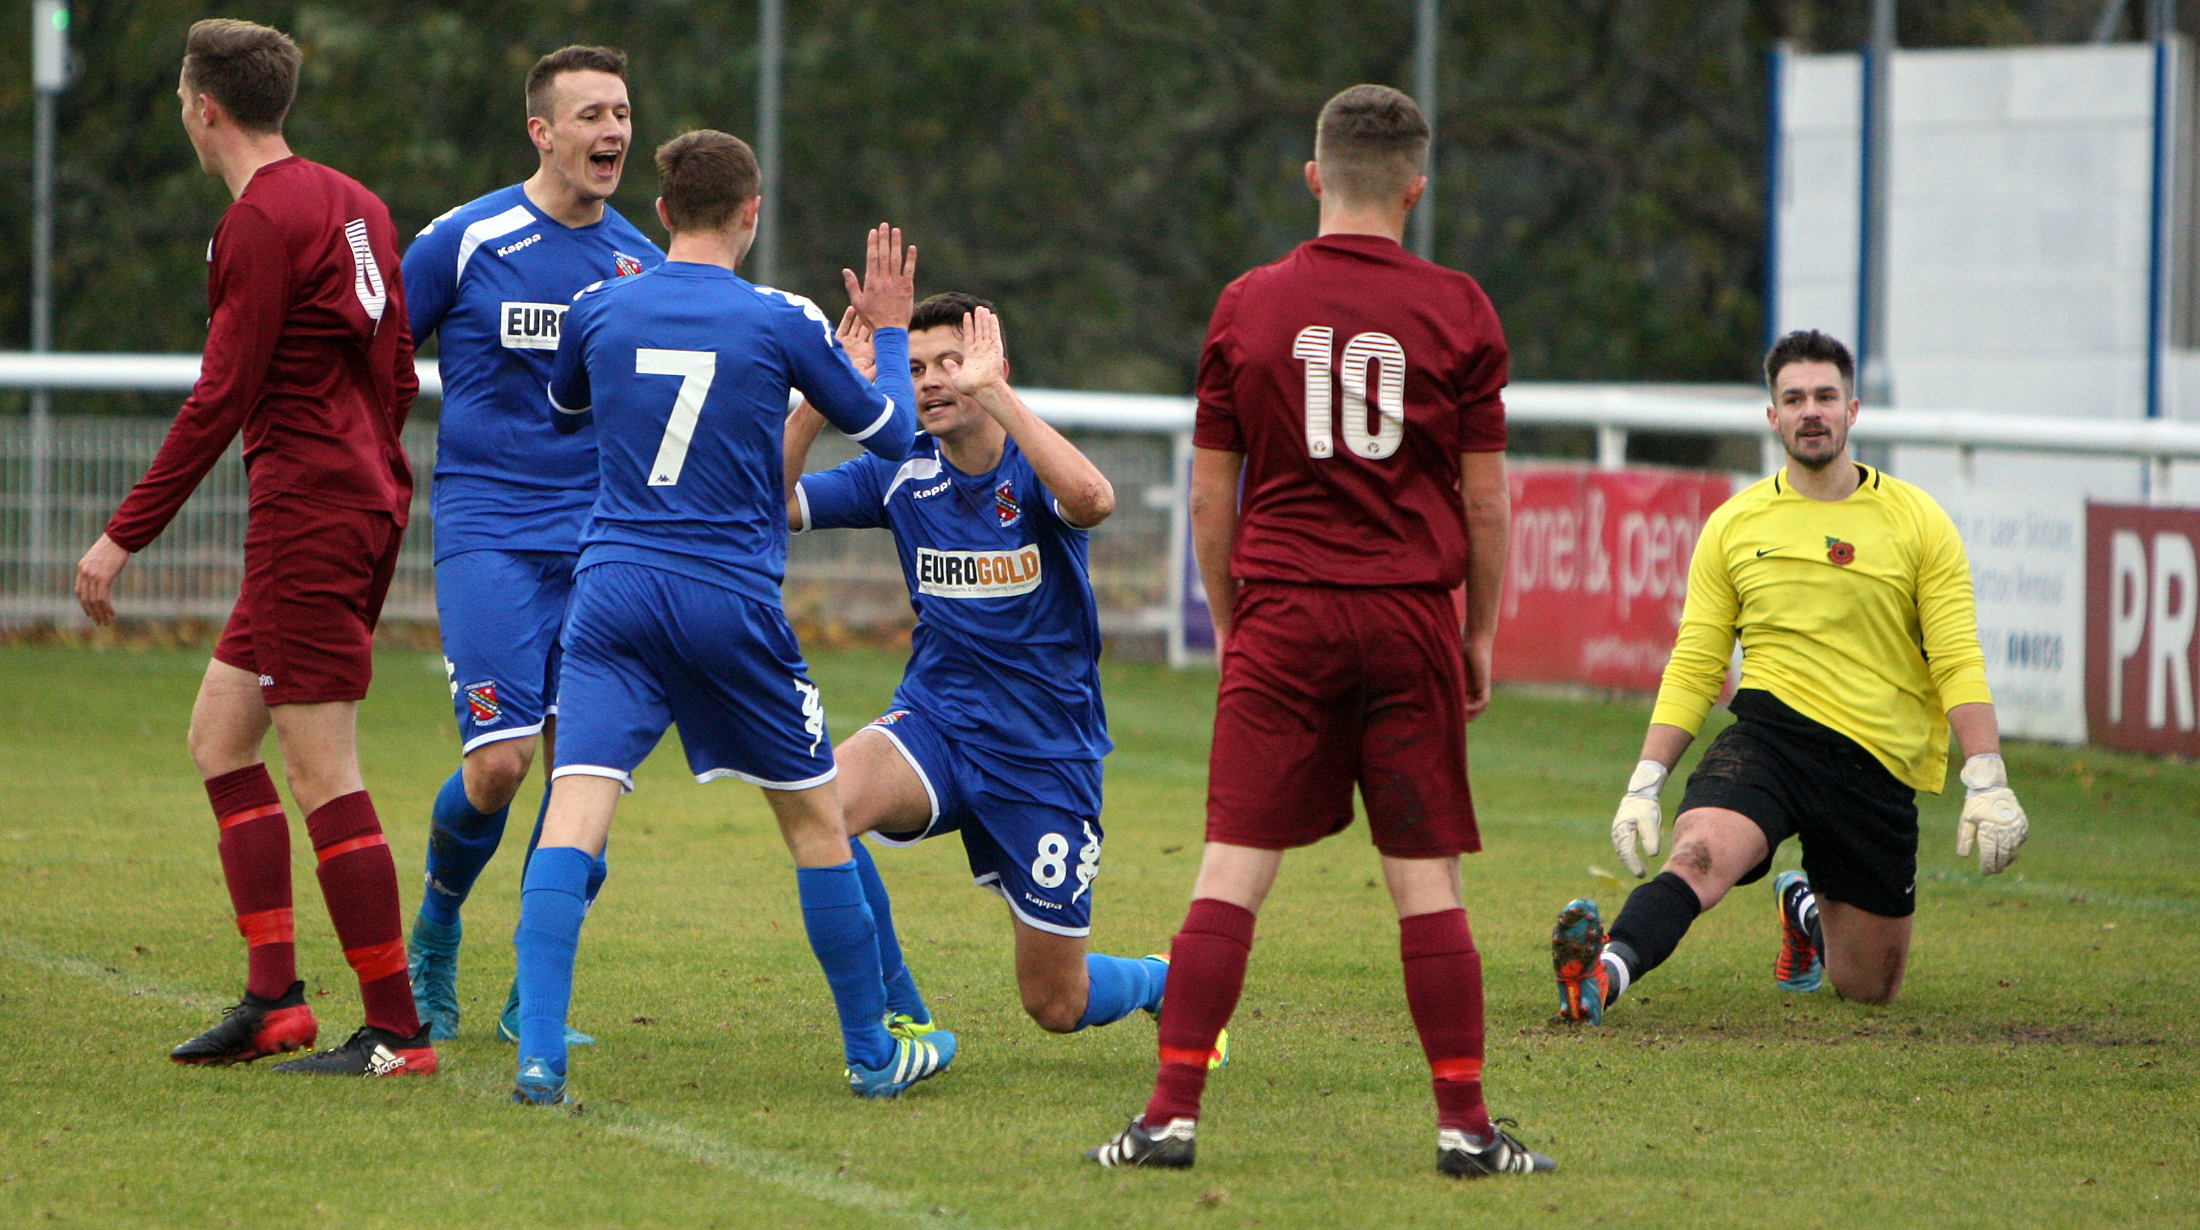 Alex Darlington has been a key man for Bangor City this season (Photo by Richard Birch)